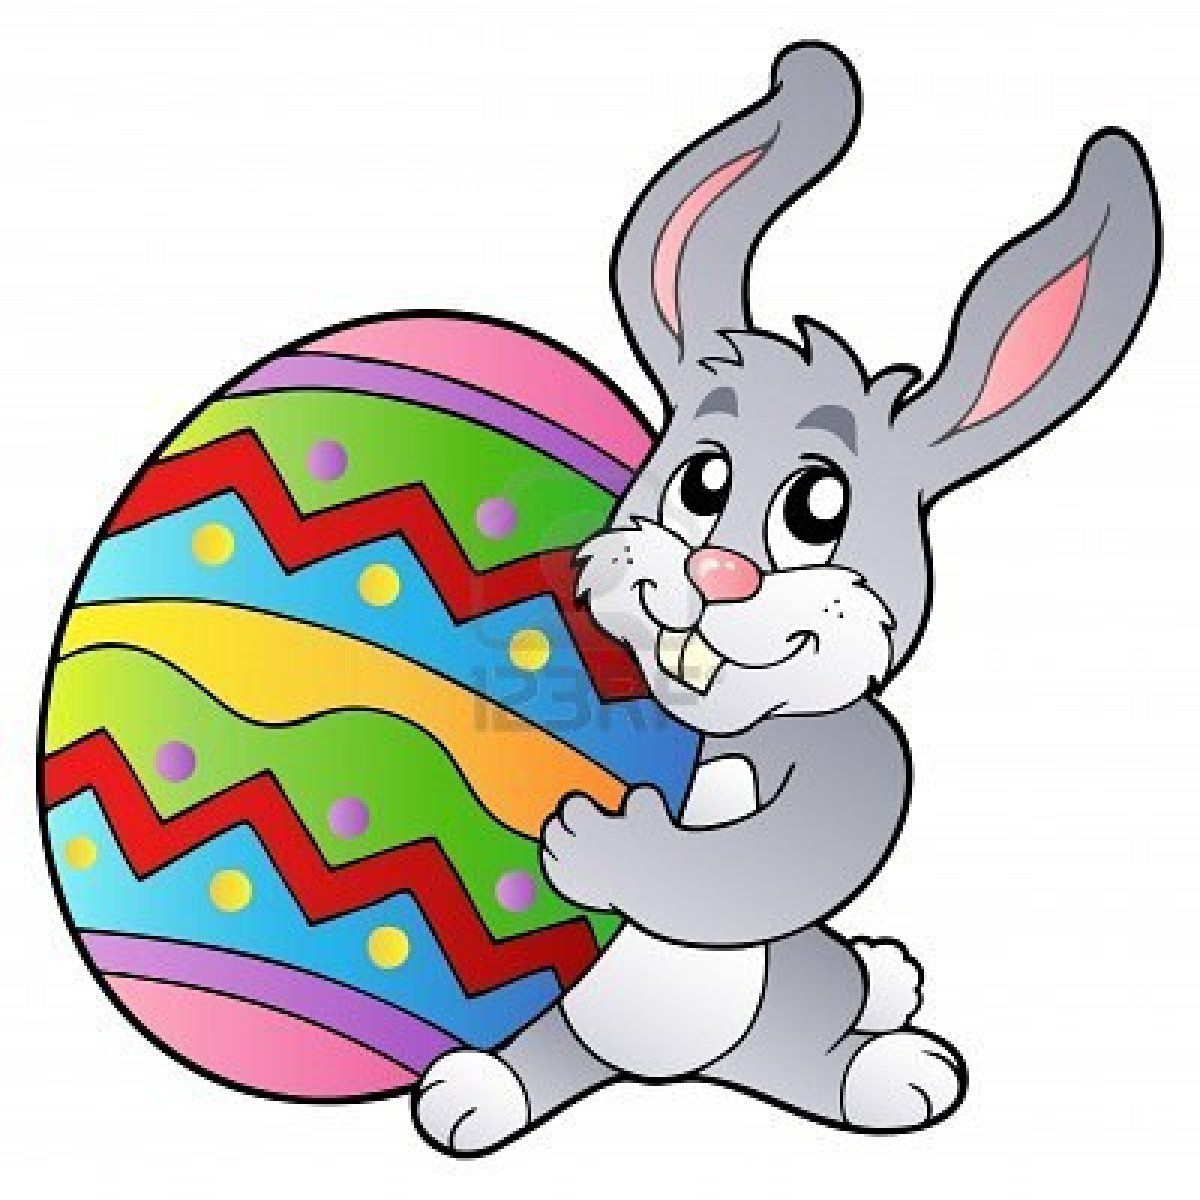 easter bunny free large images dilan pinterest easter bunny rh pinterest co uk easter bunny clipart no background easter bunny clipart png